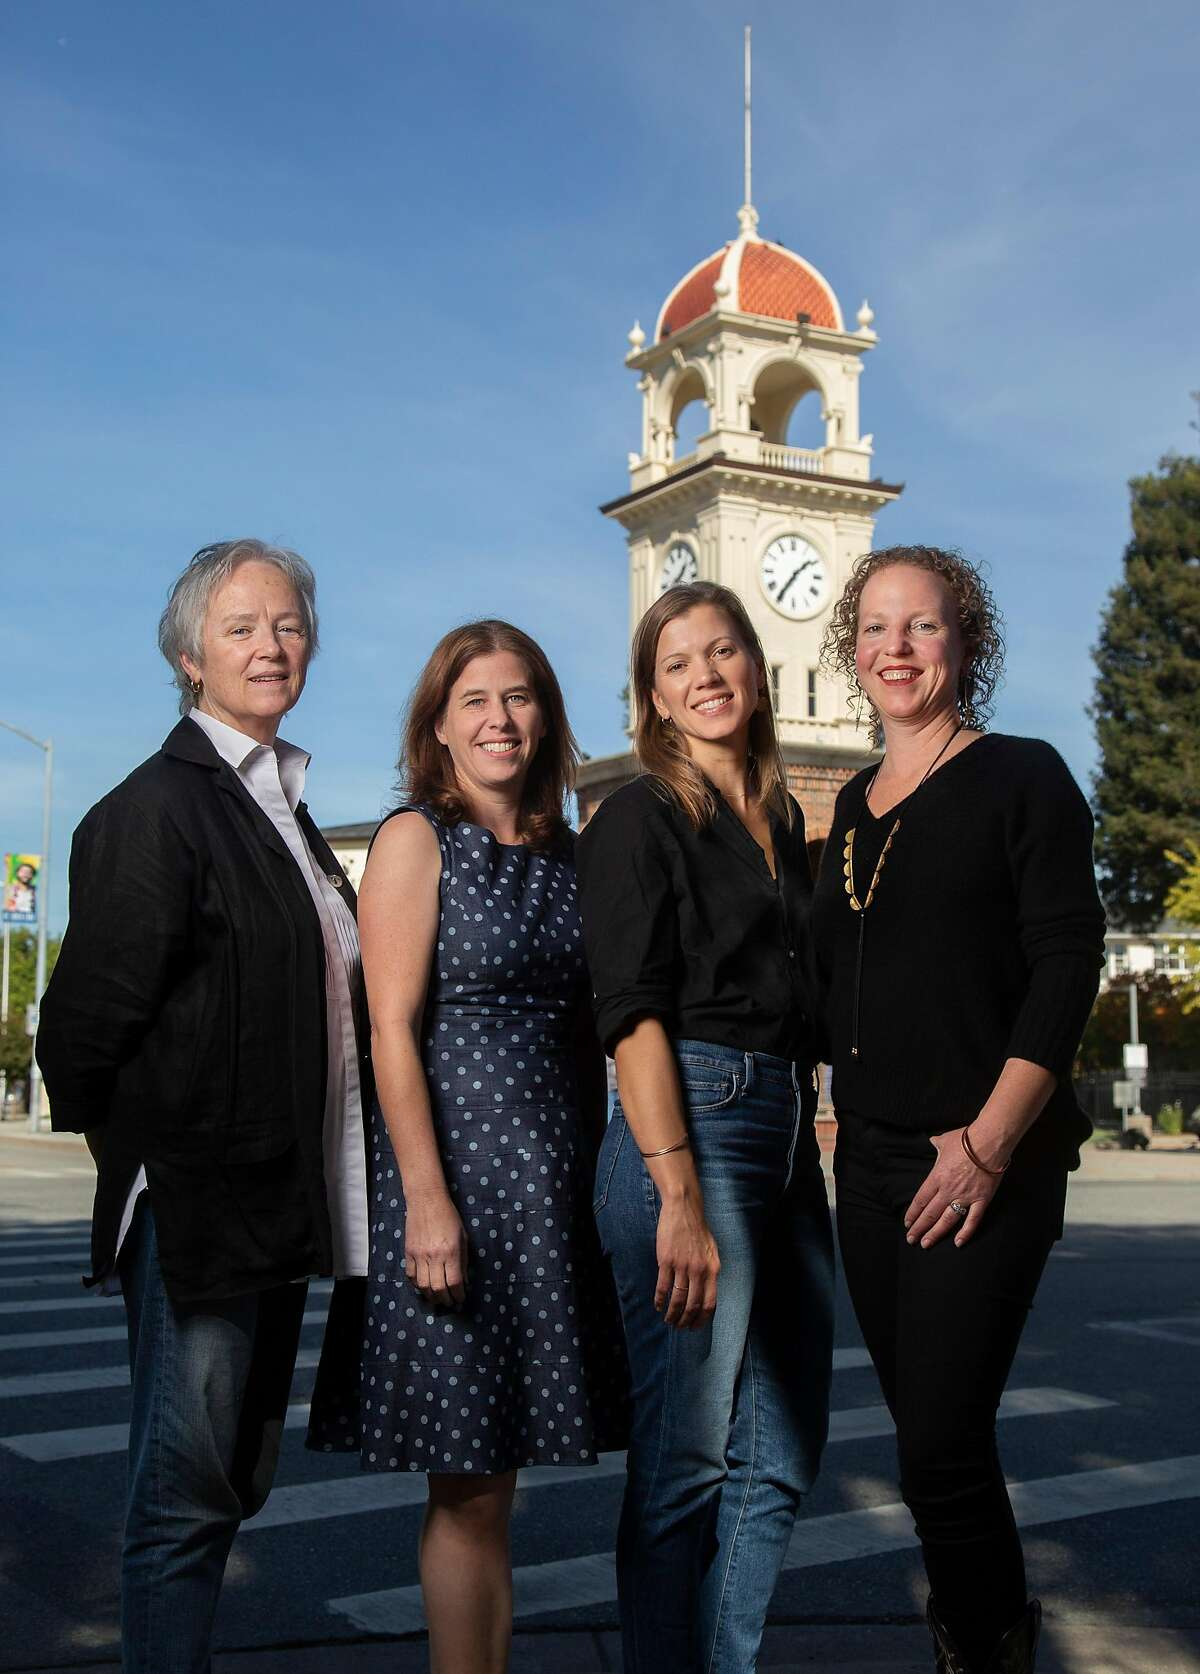 From left, Patrice Boyle of Soif, Casey Coonerty-Protti, of Bookshop Santa Cruz, Rama Zoe Heinrich and her sister, Anandi Heinrich, of Pacific Trading Co. photographed on Thursday, 11/01, 2018 in Santa Cruz, California. Santa Cruz has the fourth highest female owned businesses in the country and female entrepreneurs in downtown recently created the Alliance of Women Entrepreneurs.